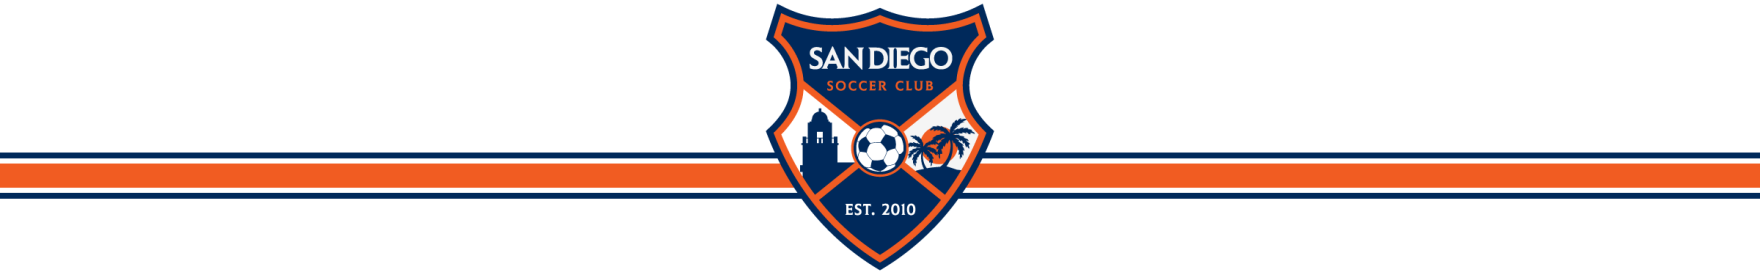 San Diego Soccer Club Sponsorship Dear Sponsor: San Diego Soccer Club (SDSC) has been operating in the North San Diego County area for over 30 years, providing recreational and competitive soccer to